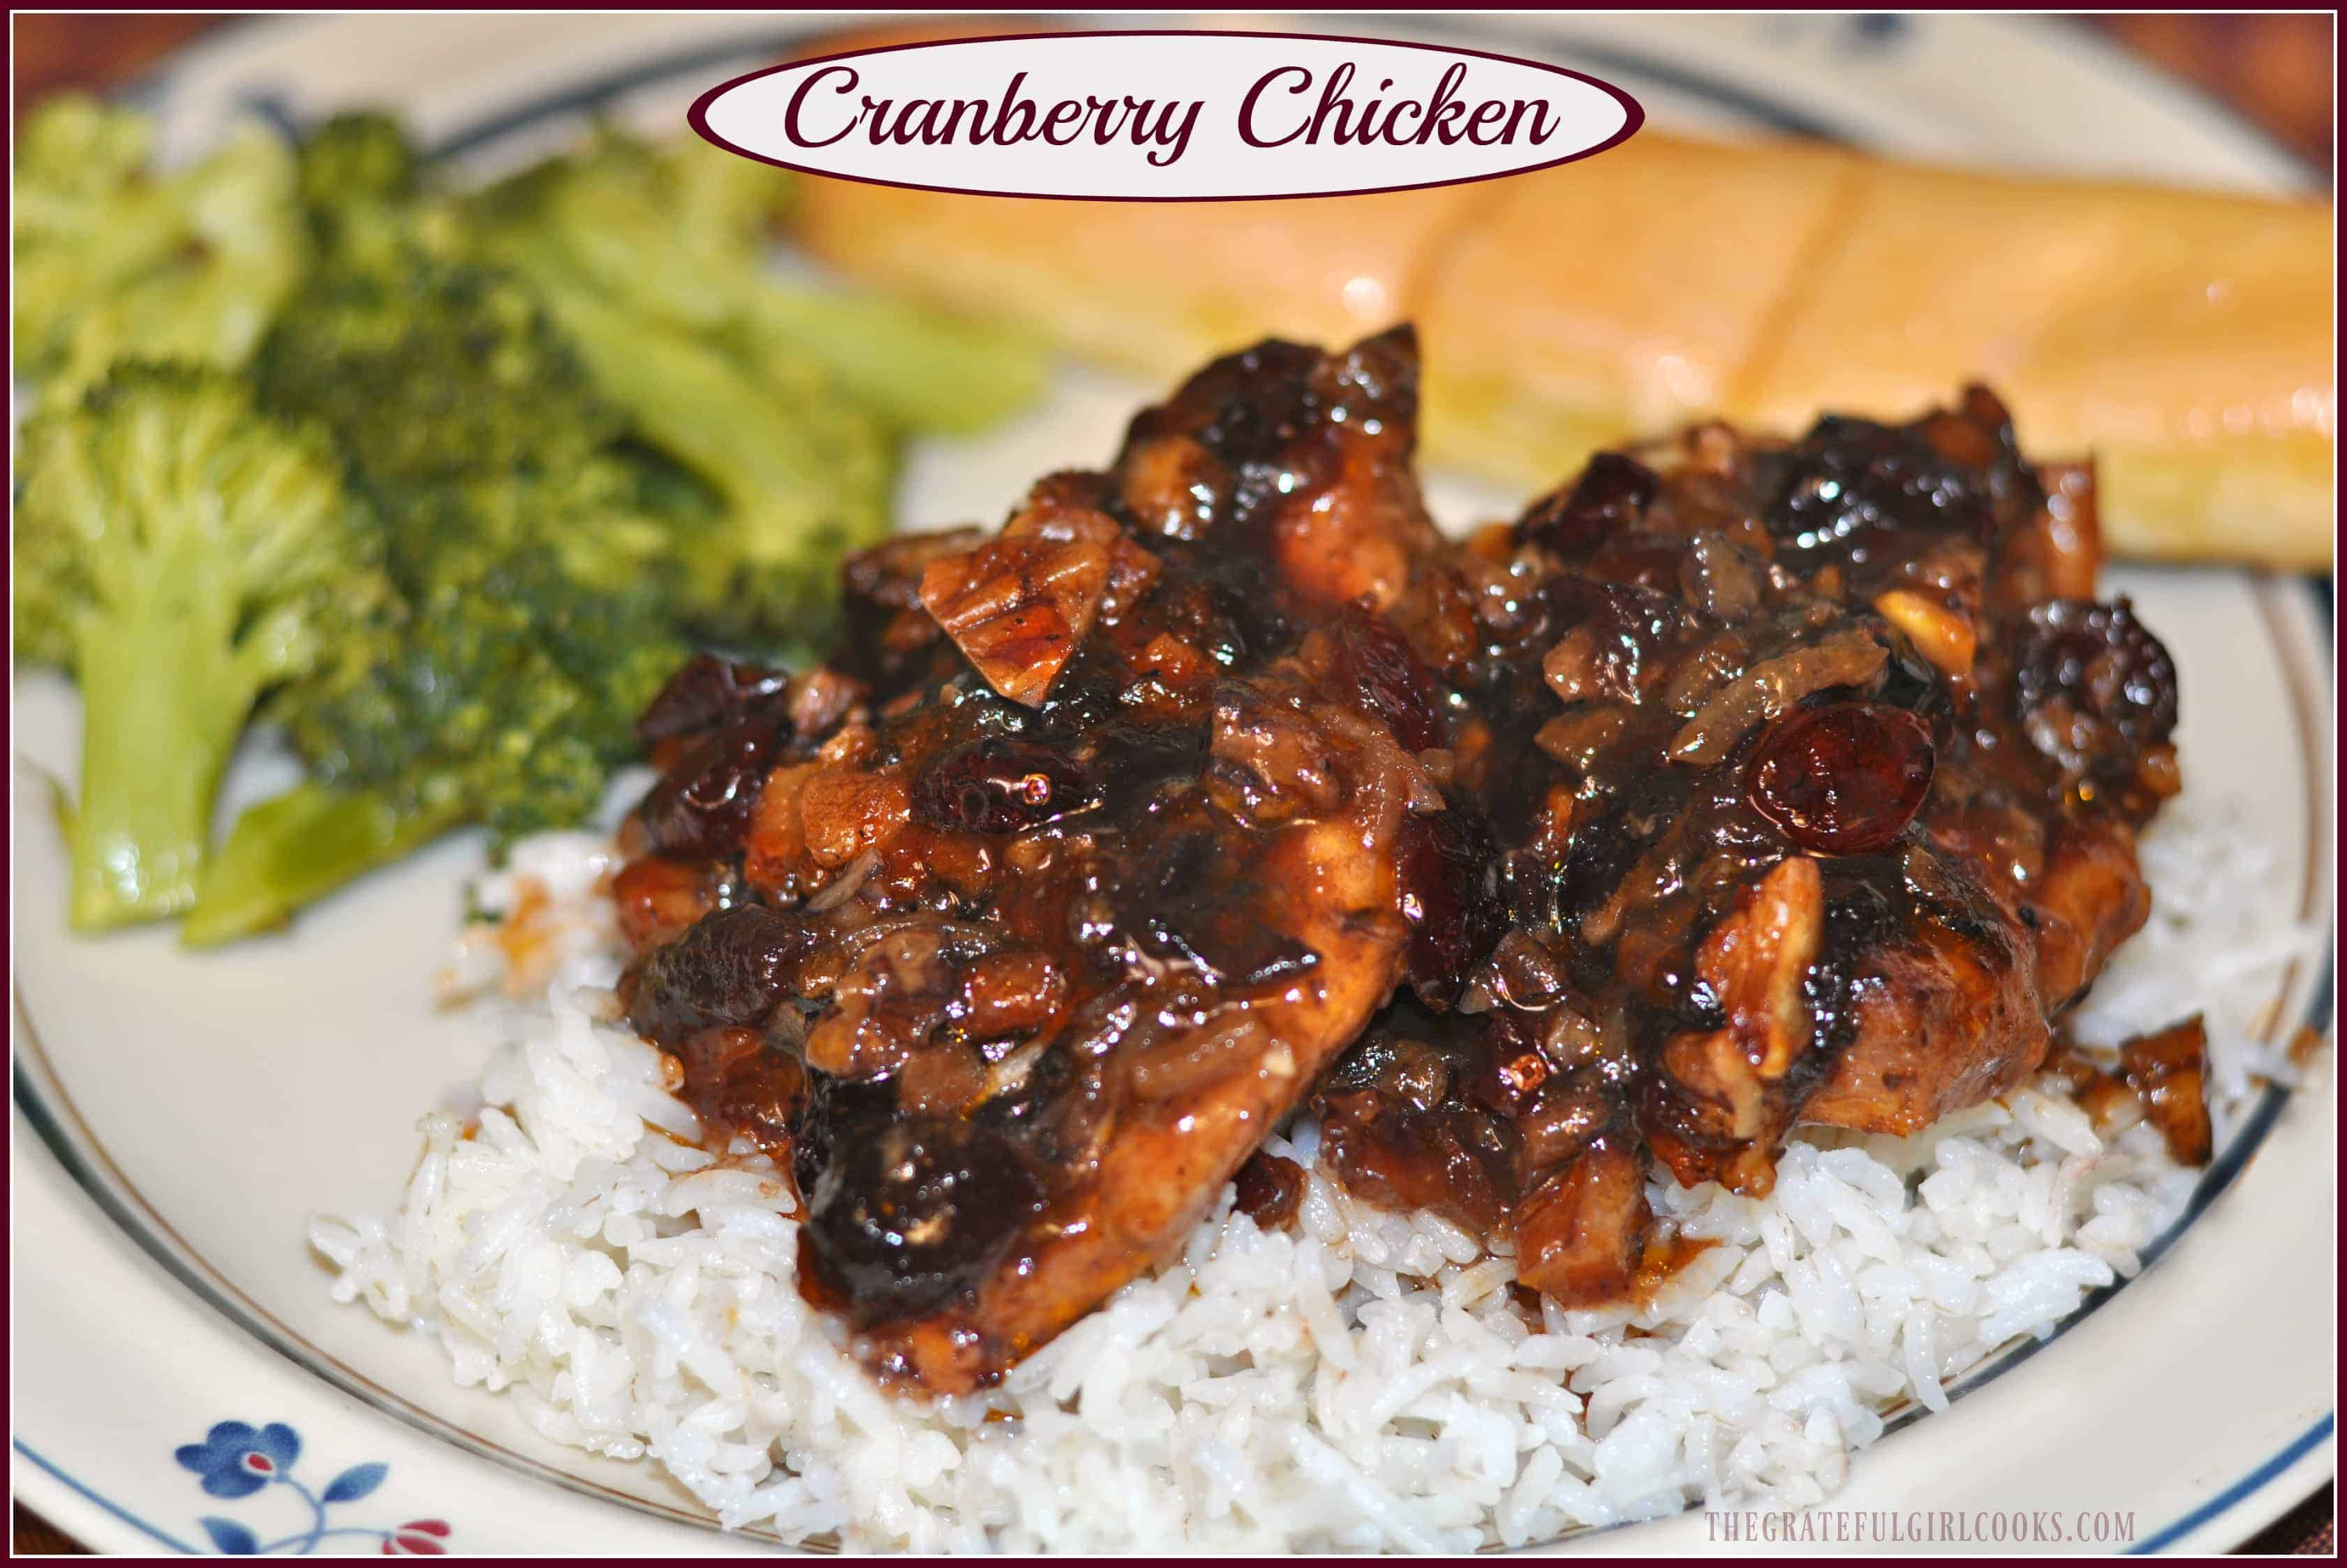 Cranberry Chicken / The Grateful Girl Cooks! You only need less than 10 minutes of prep before baking this delicious chicken dish!